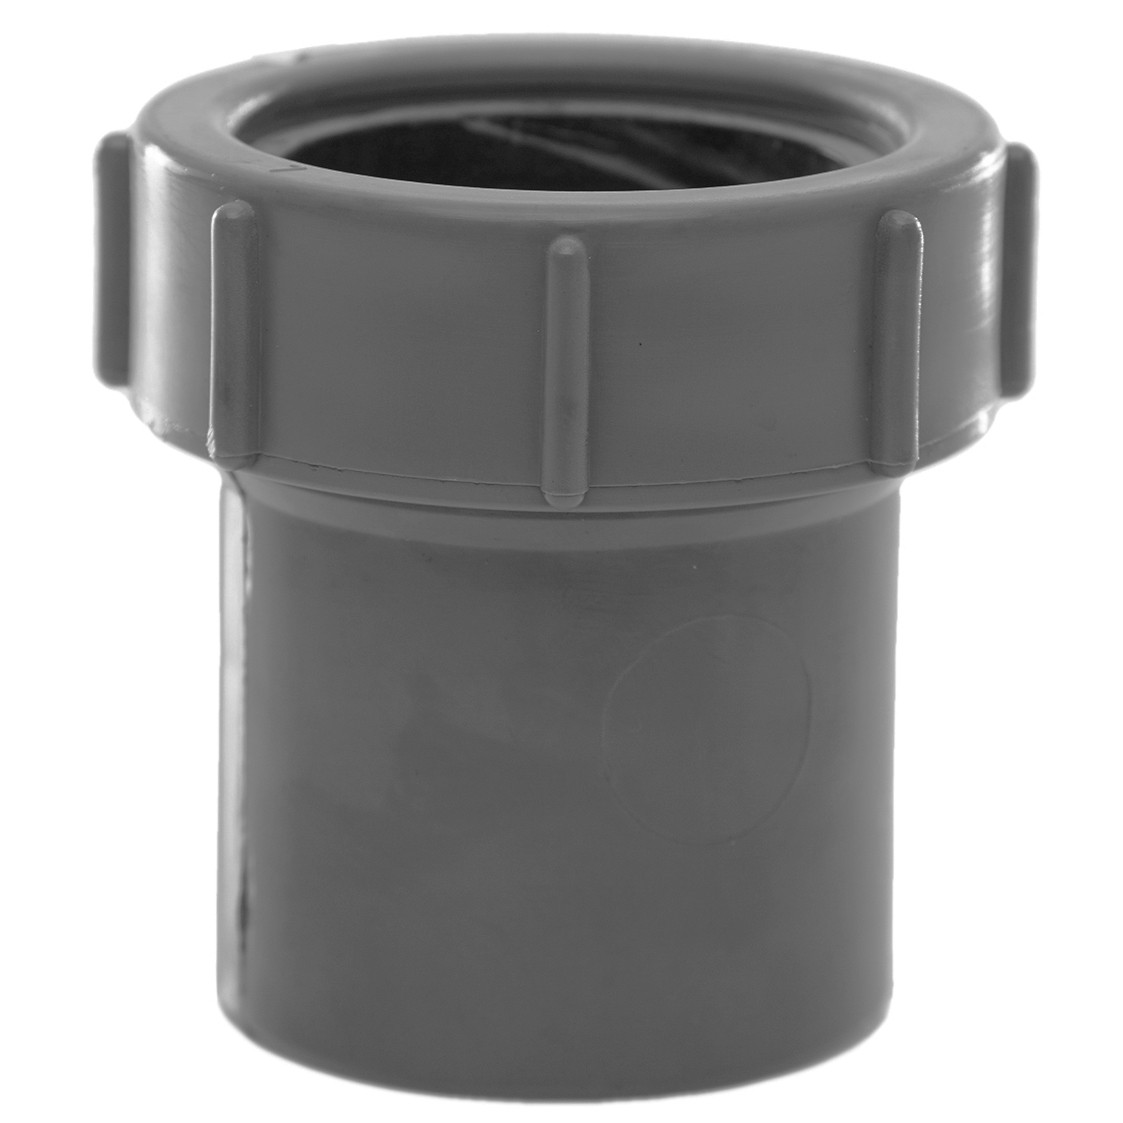 Polypipe 40mm Solvent Weld Waste Expansion Coupler - Grey